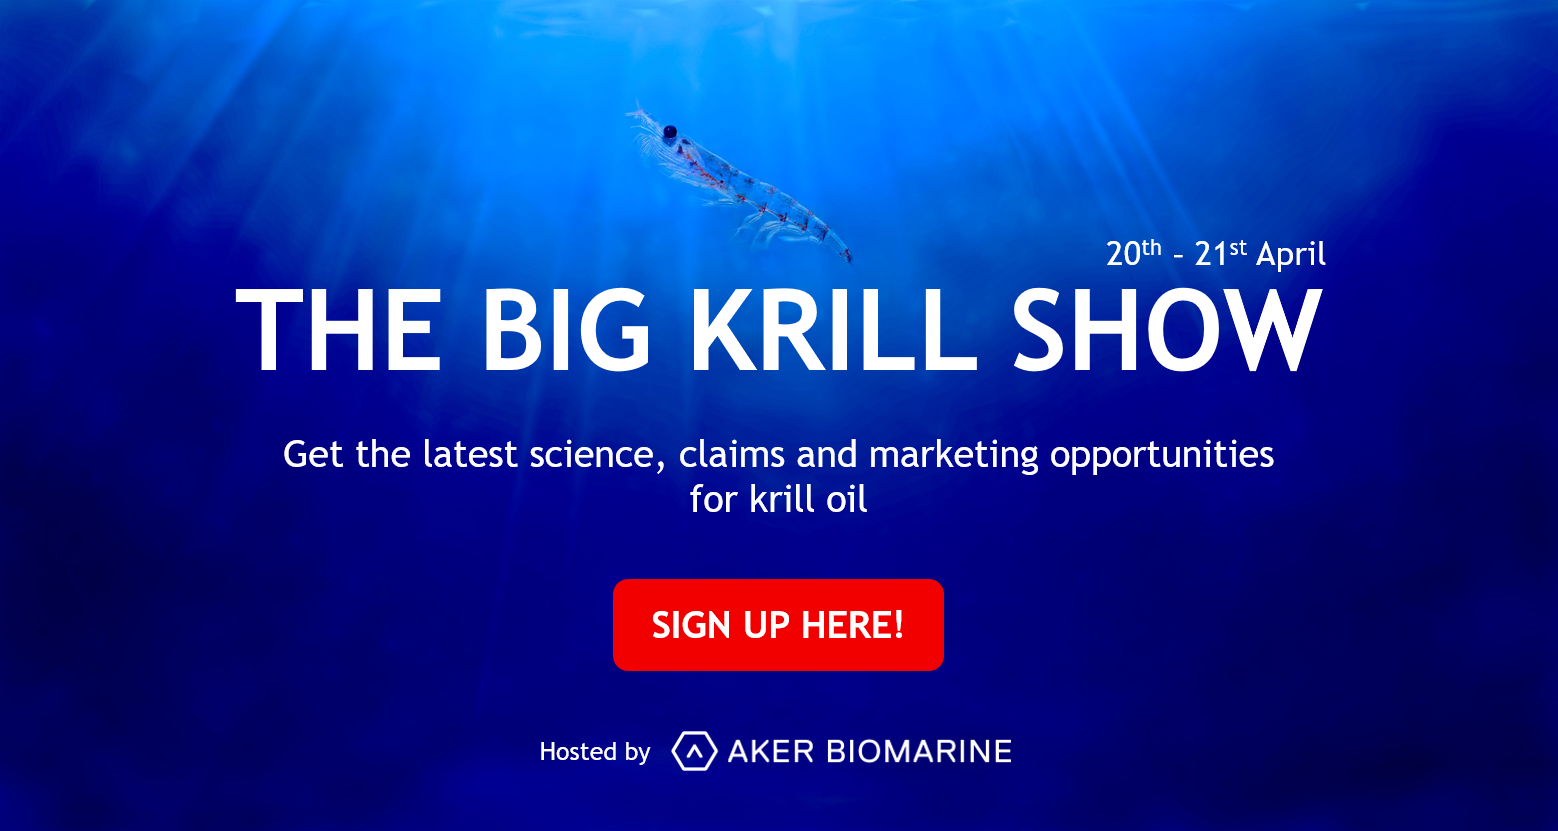 big krill show digital event for krill oil